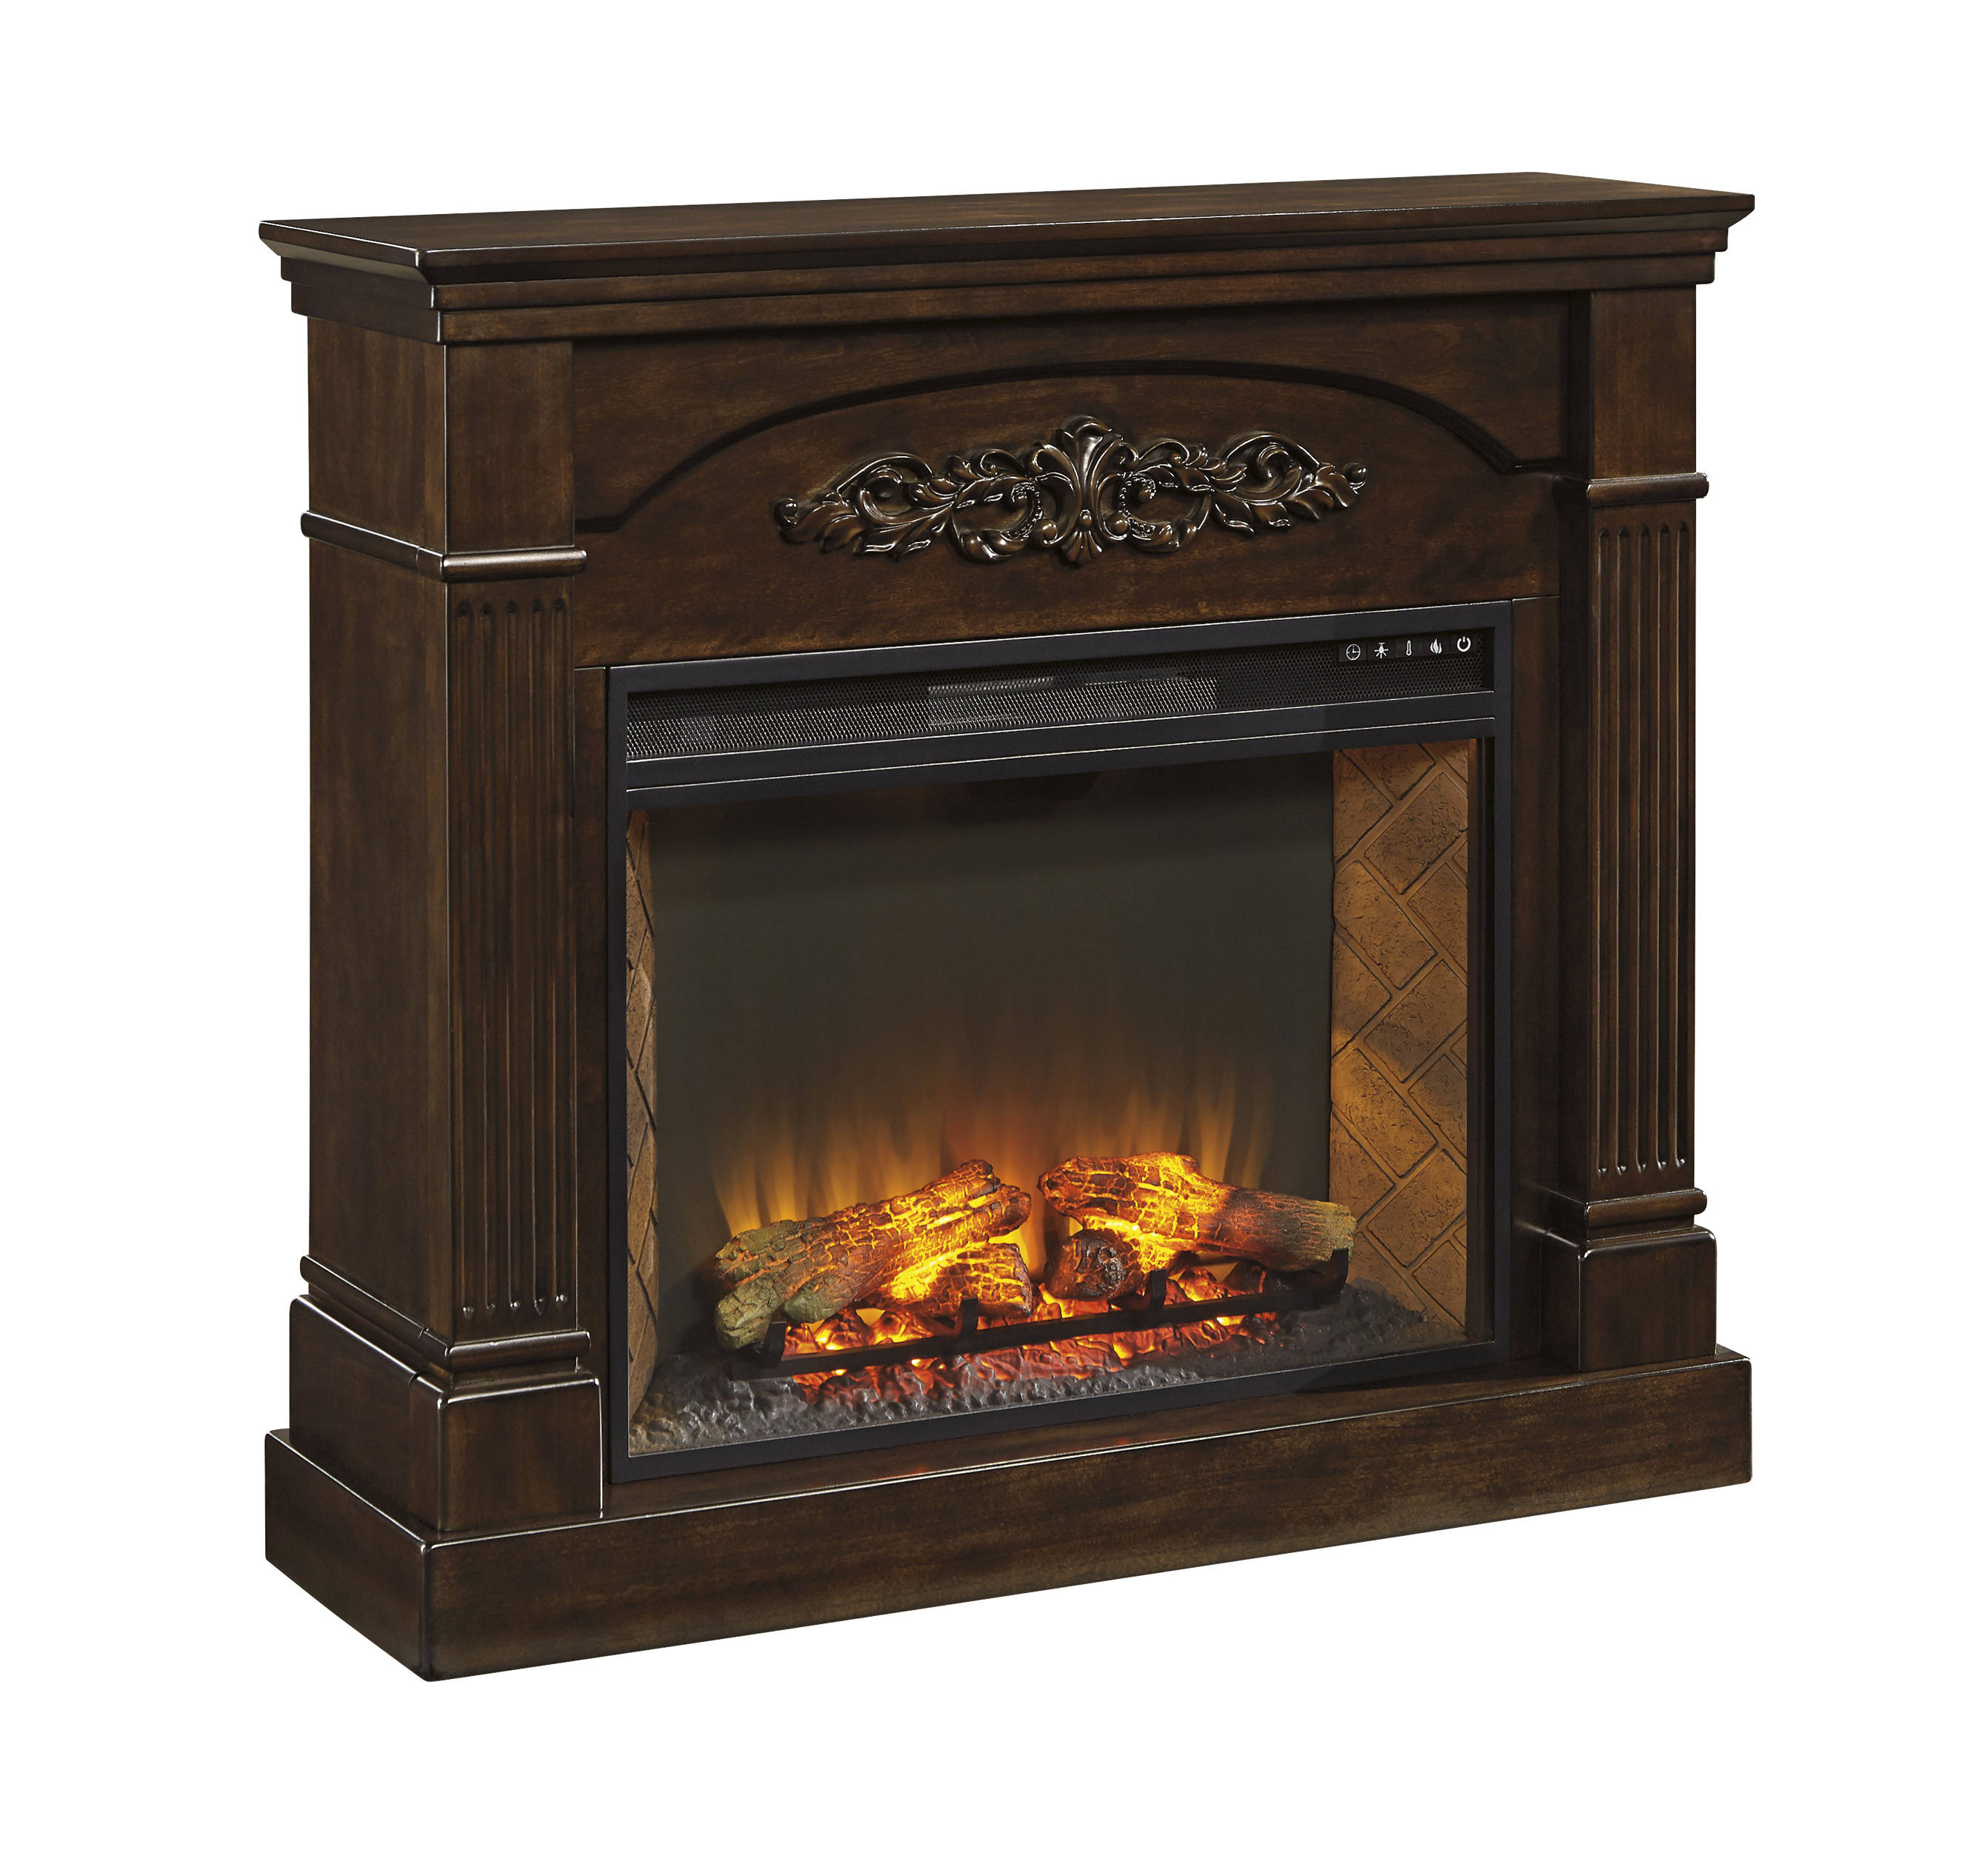 Boddew Traditional Classics Dark Brown Wood Fireplace Mantel The Classy Home